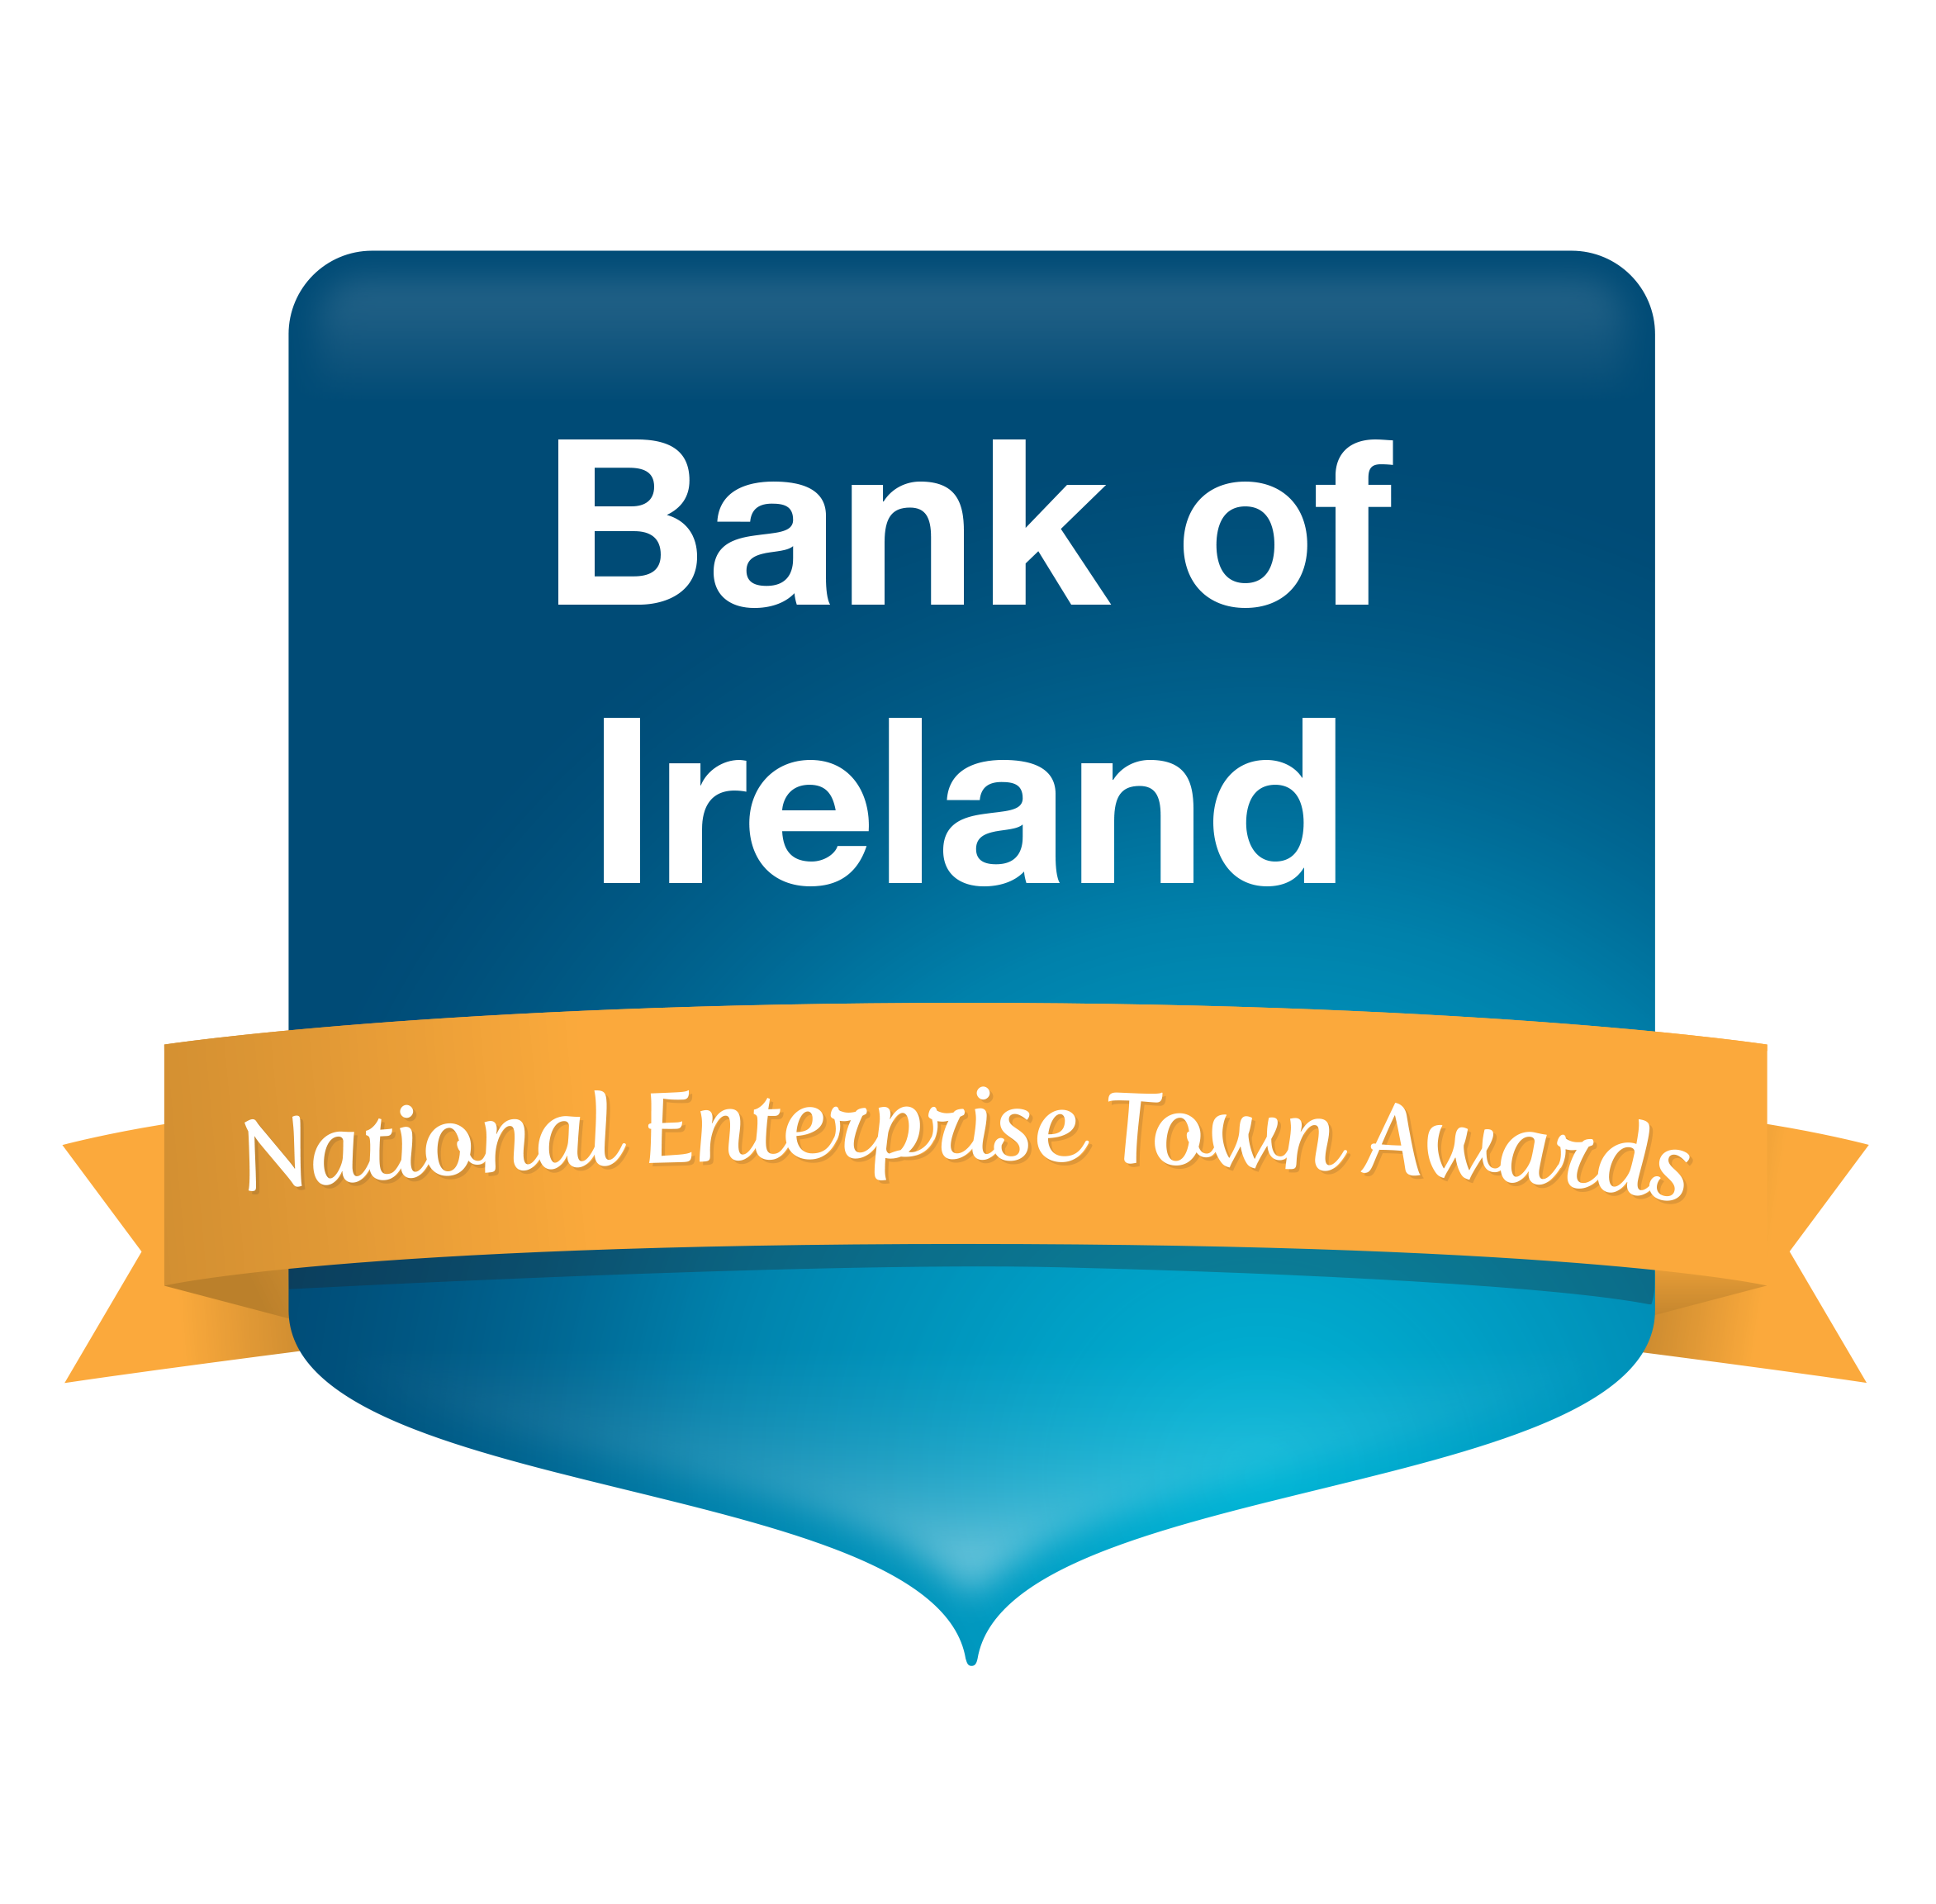 National Enterprising Town Awards